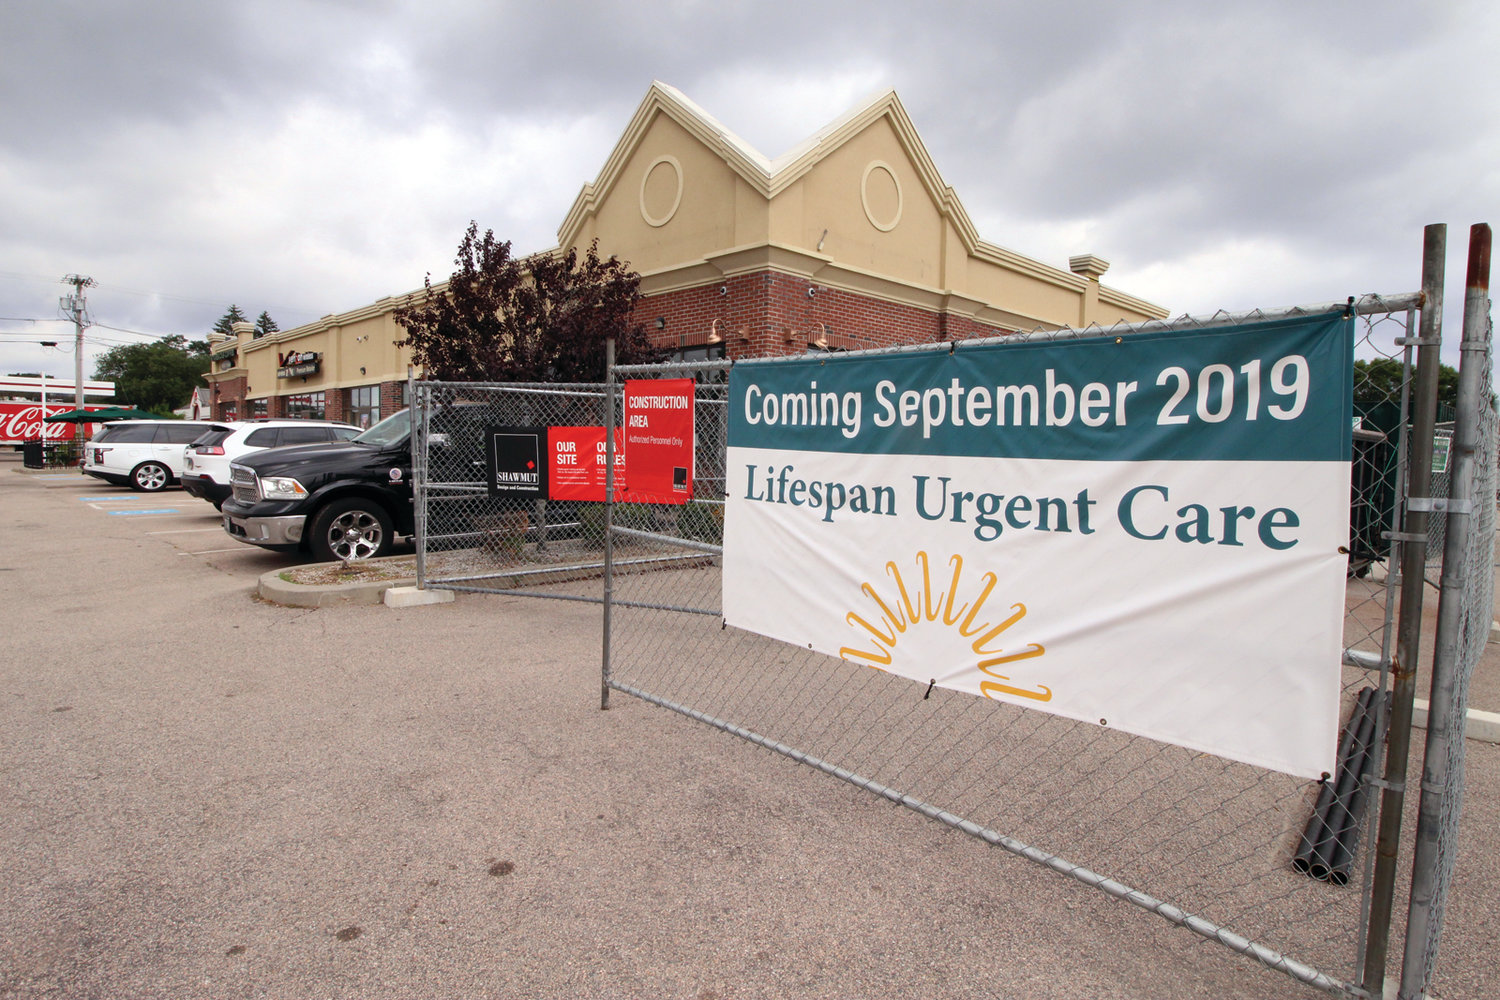 A FIRST: Lifespan will be opening the first of an undisclosed number of Urgent Care clinics statewide at the former Papa Gino's at Hoxsie Four Corners.